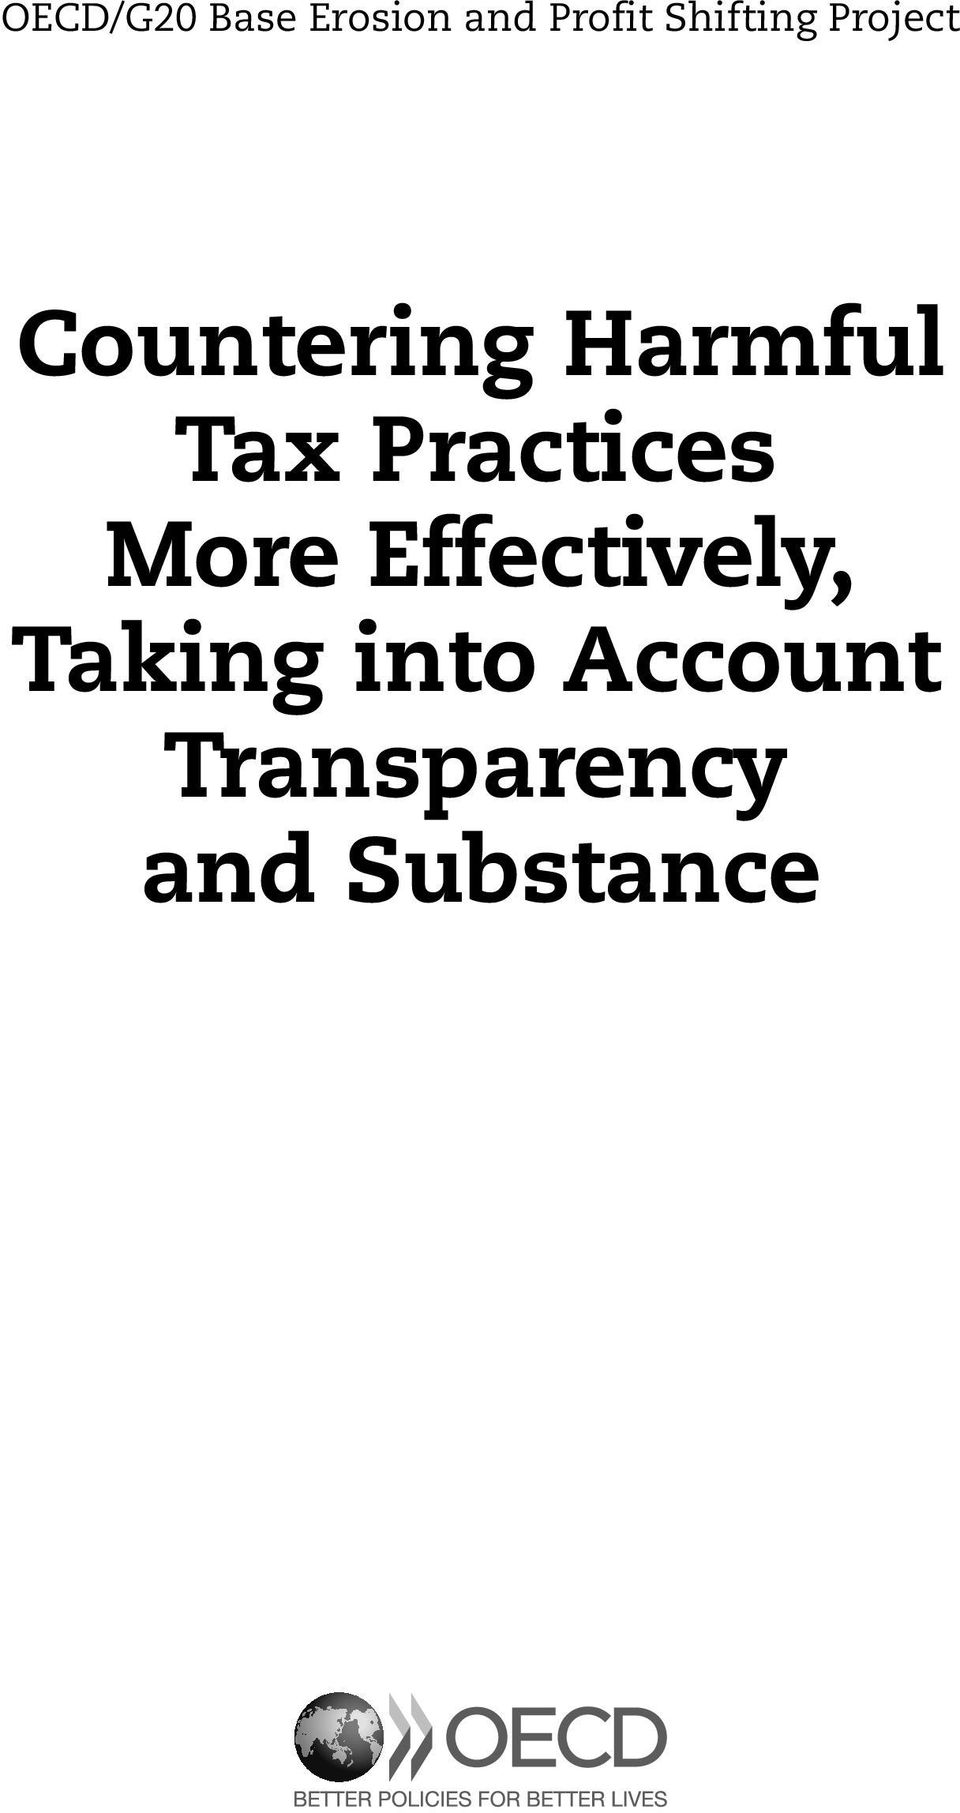 Tax Practices More Effectively,